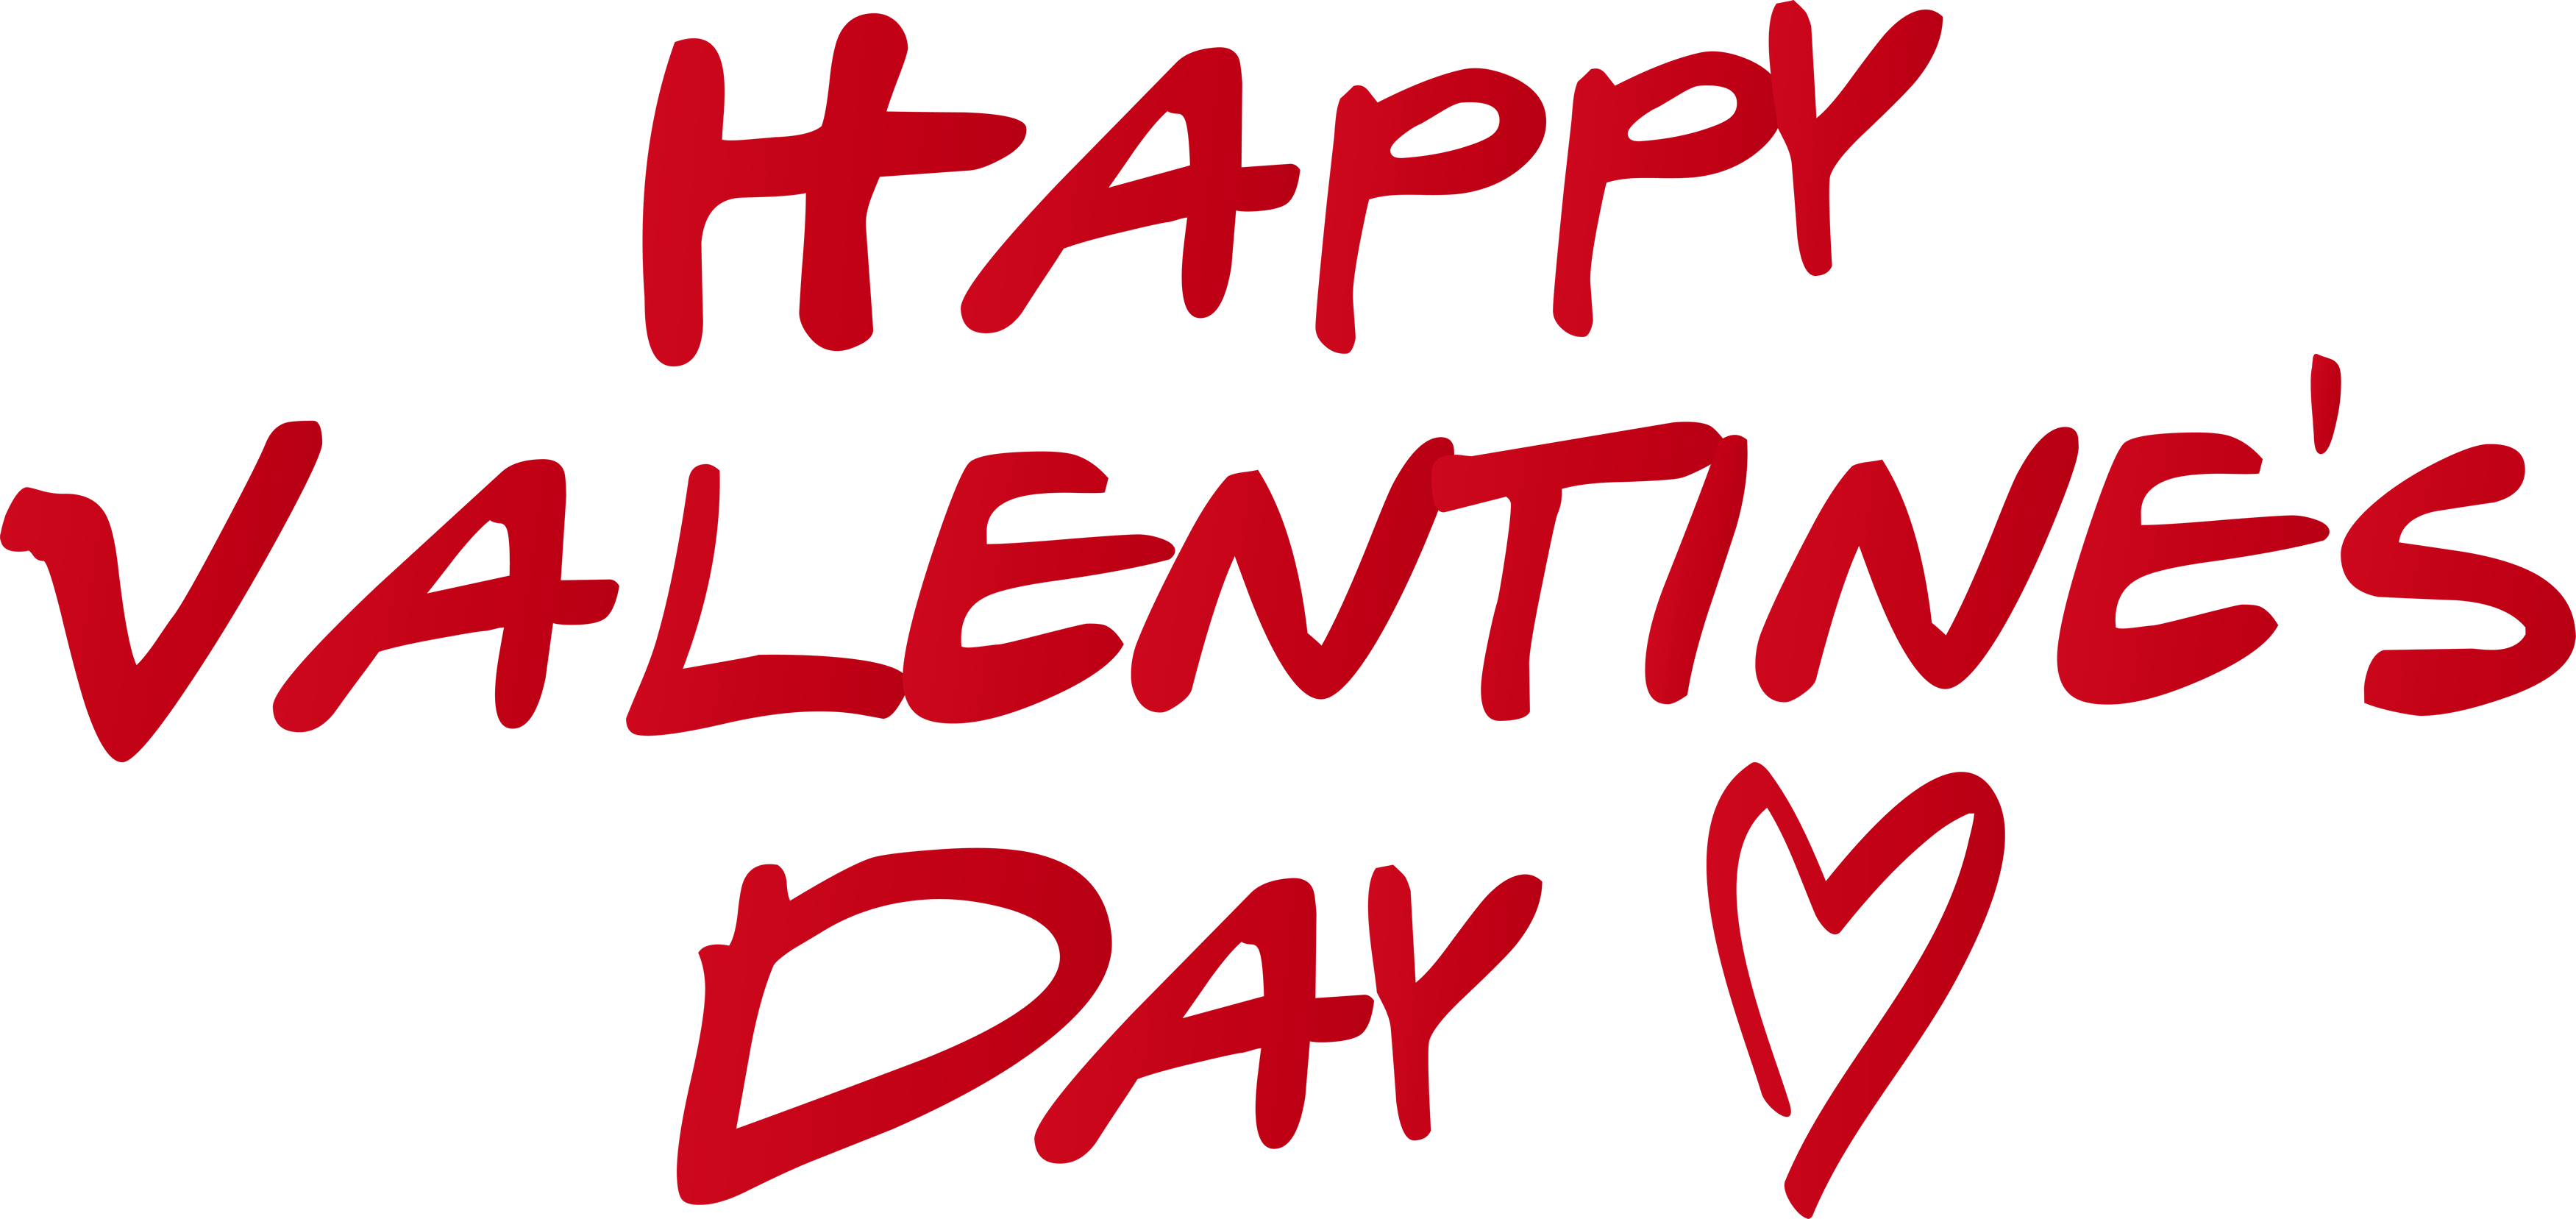 Valentines day clip art png. Happy hd transparent hdpluspngcom